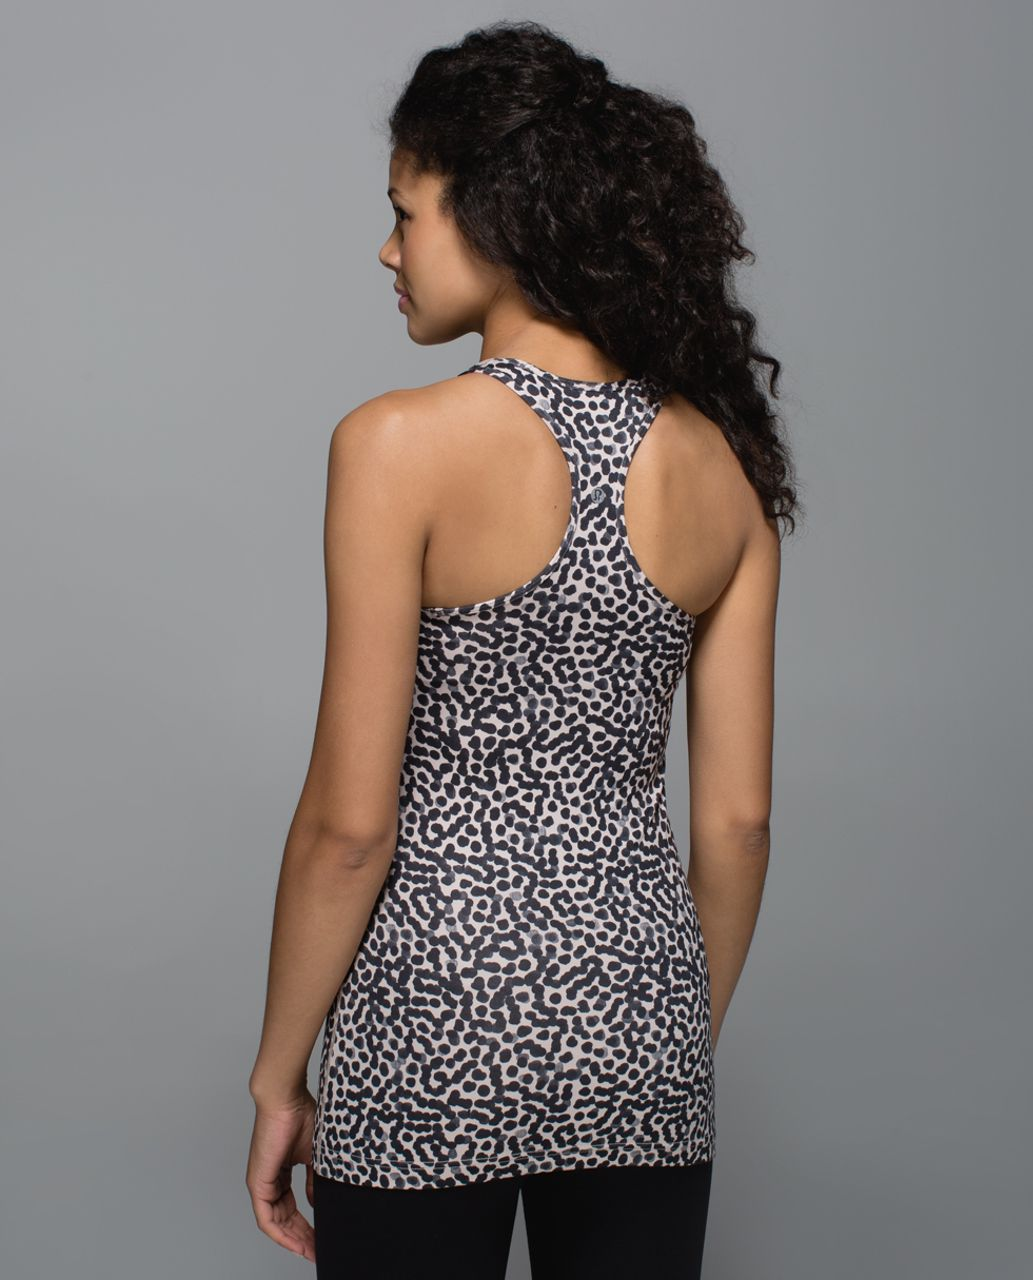 Lululemon Cool Racerback - Ace Spot Grain Black